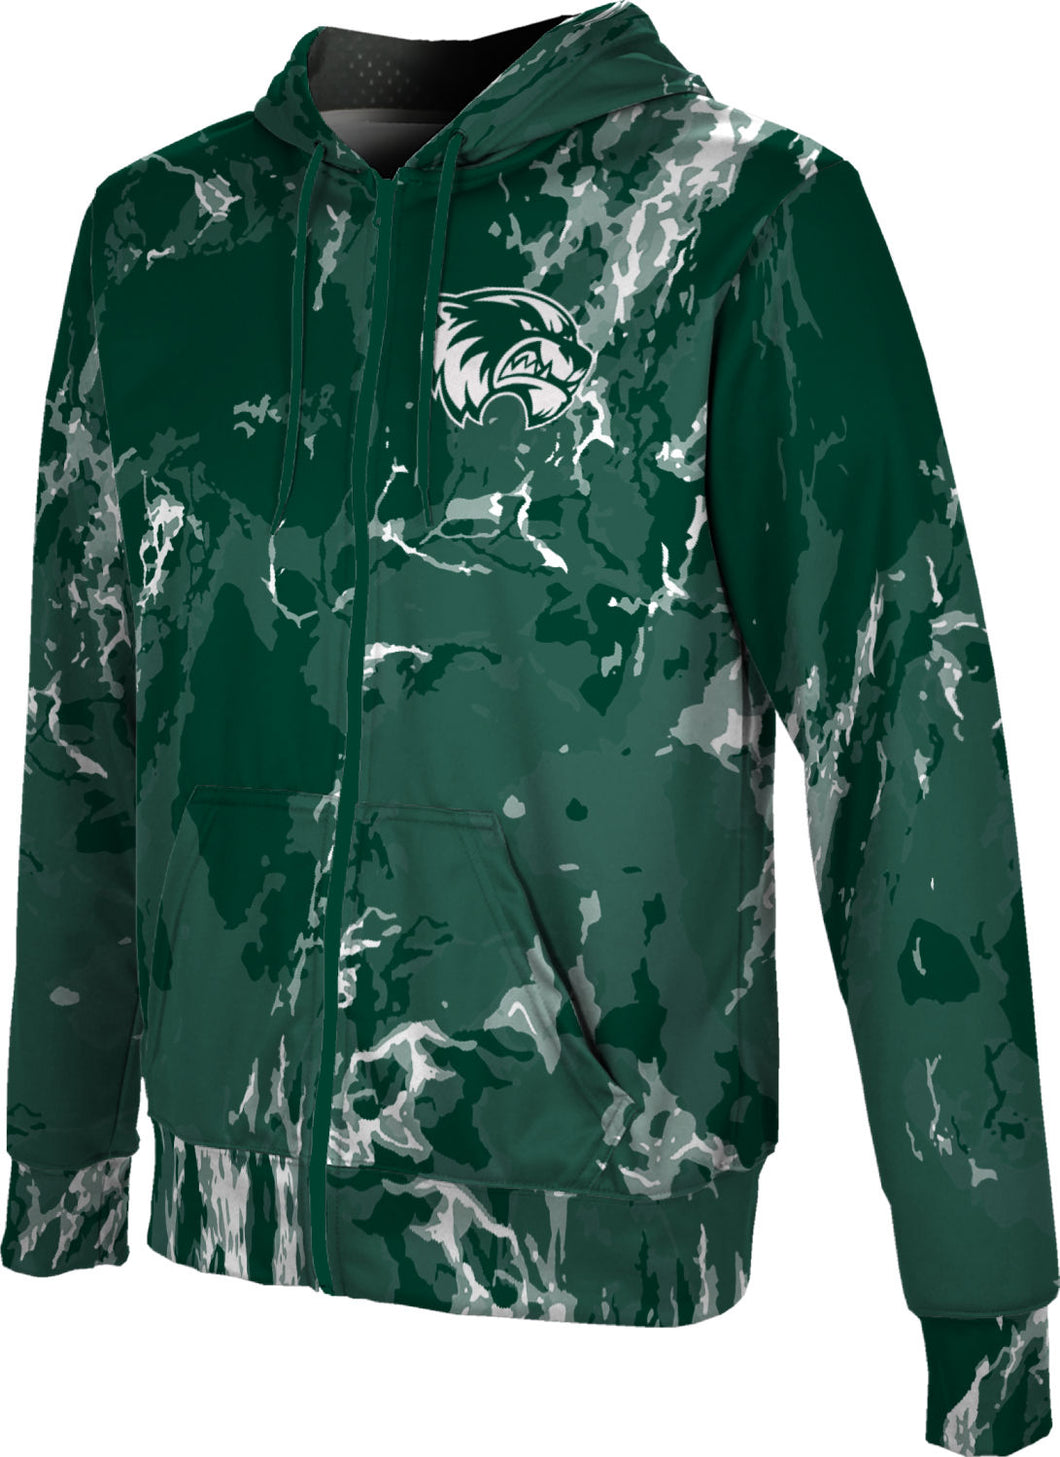 Utah Valley University: Men's Full Zip Hoodie - Marble